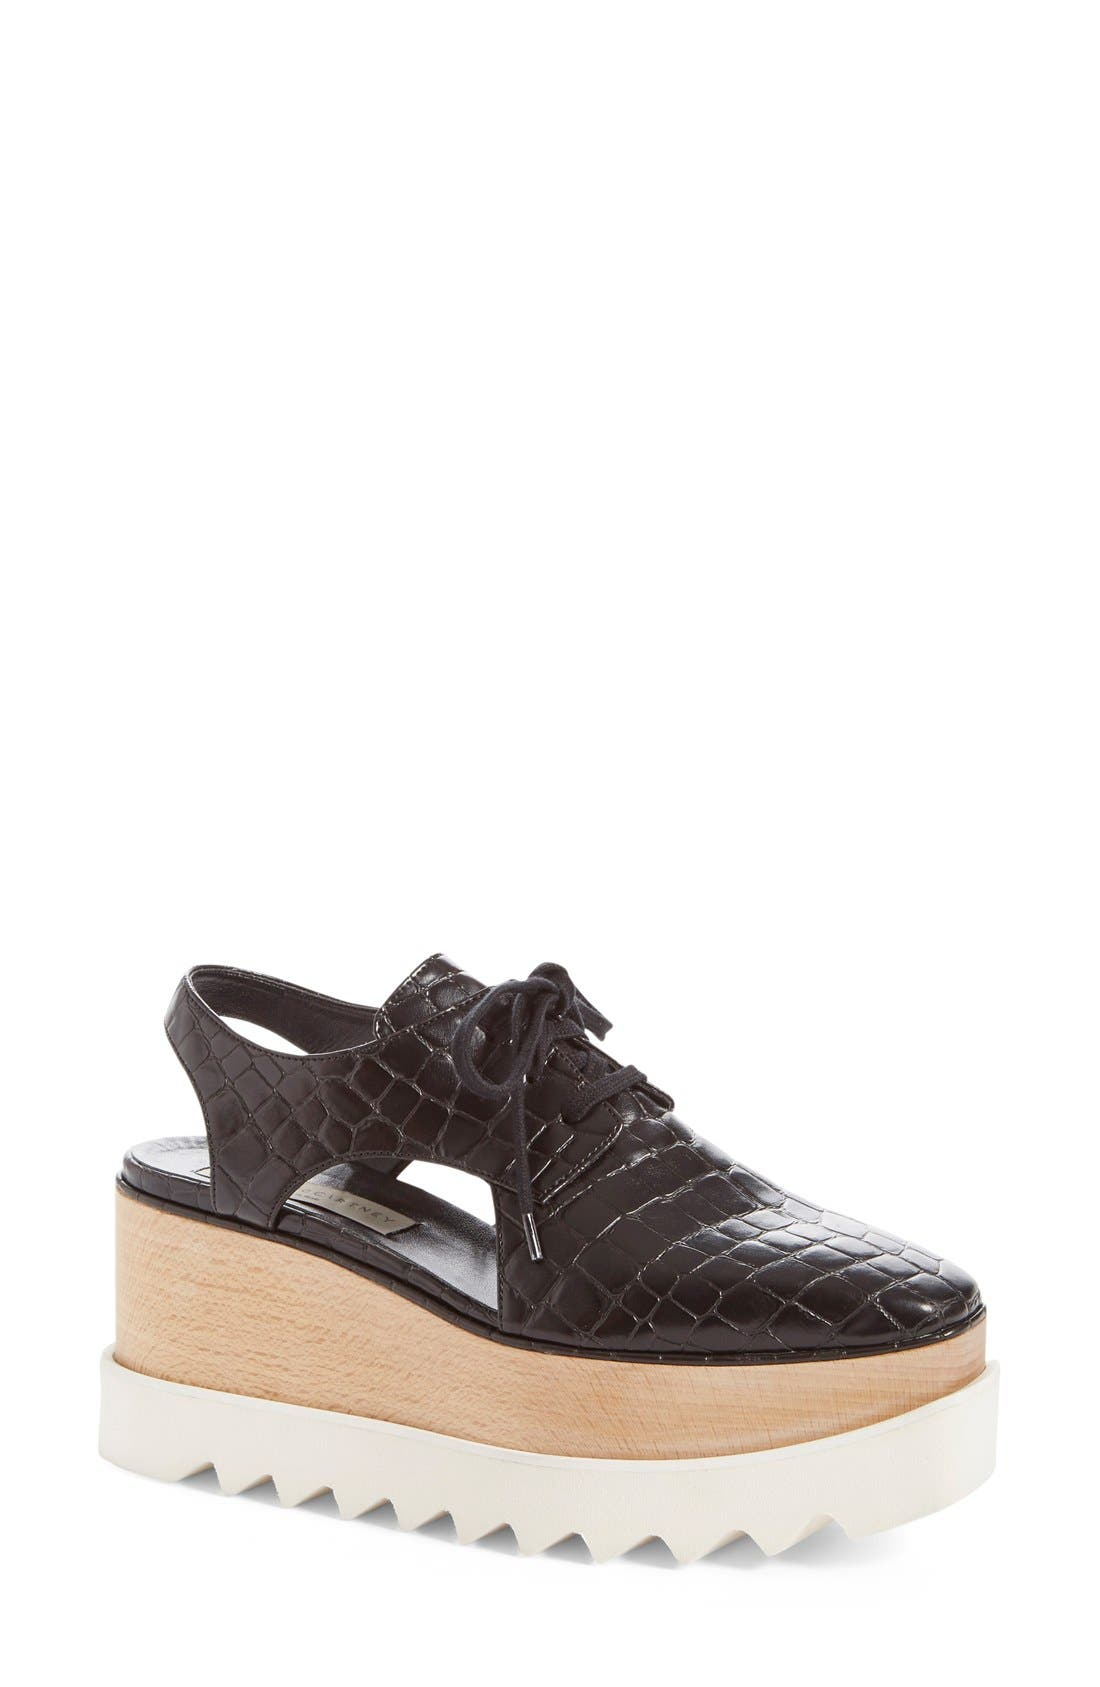 Main Image - Stella McCartney 'Elyse' Cutout Platform Oxford (Women)